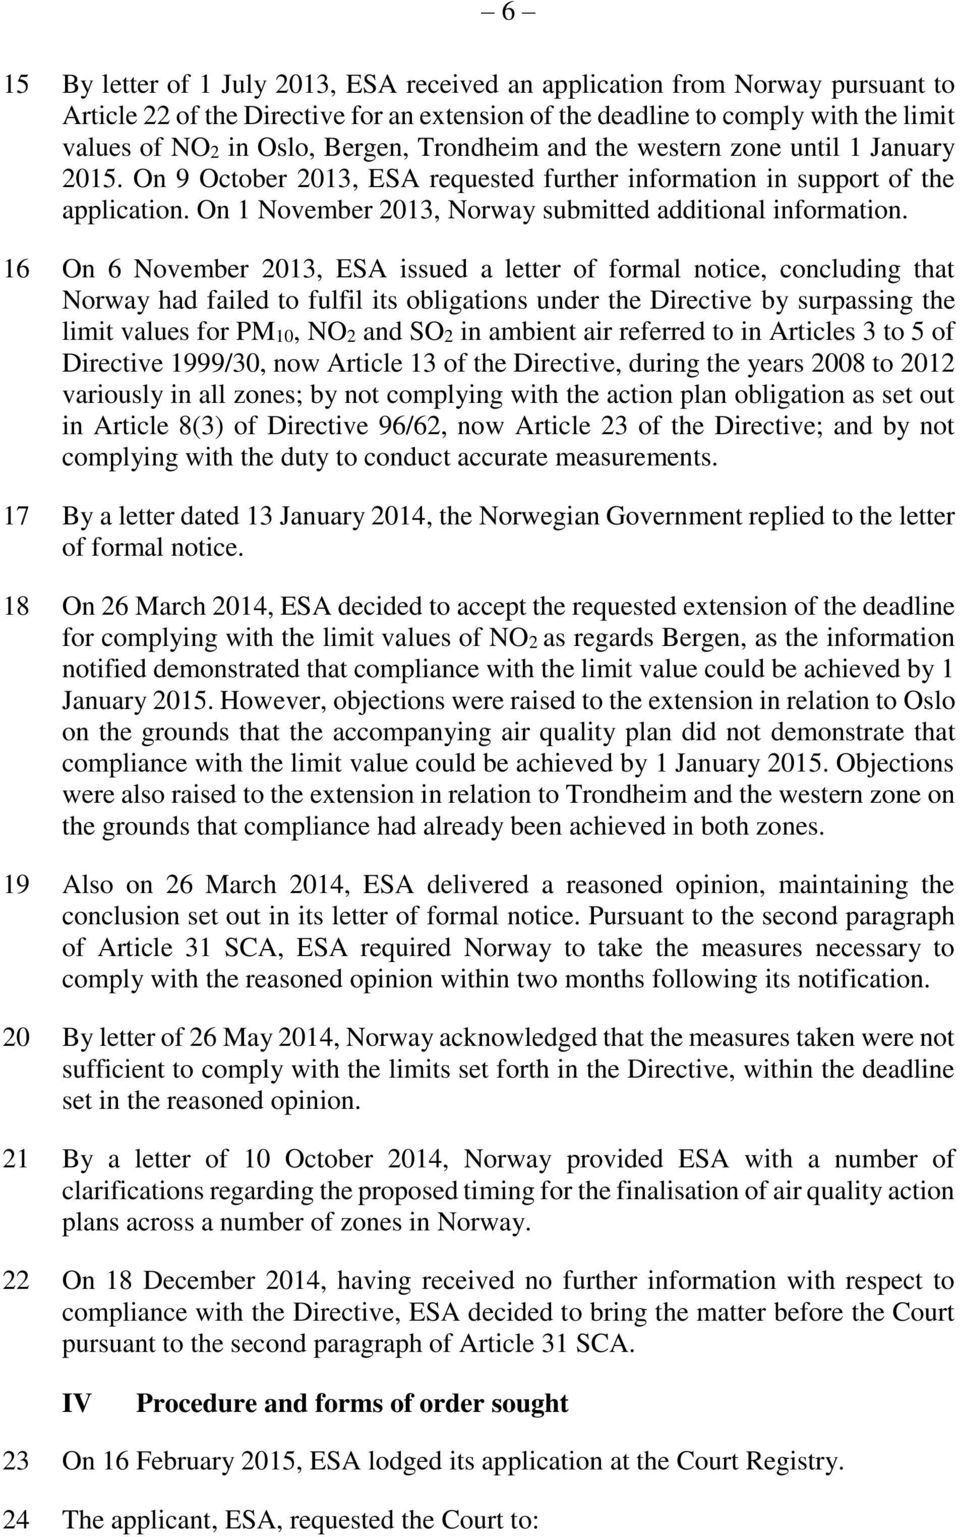 16 On 6 November 2013, ESA issued a letter of formal notice, concluding that Norway had failed to fulfil its obligations under the Directive by surpassing the limit values for PM10, NO2 and SO2 in